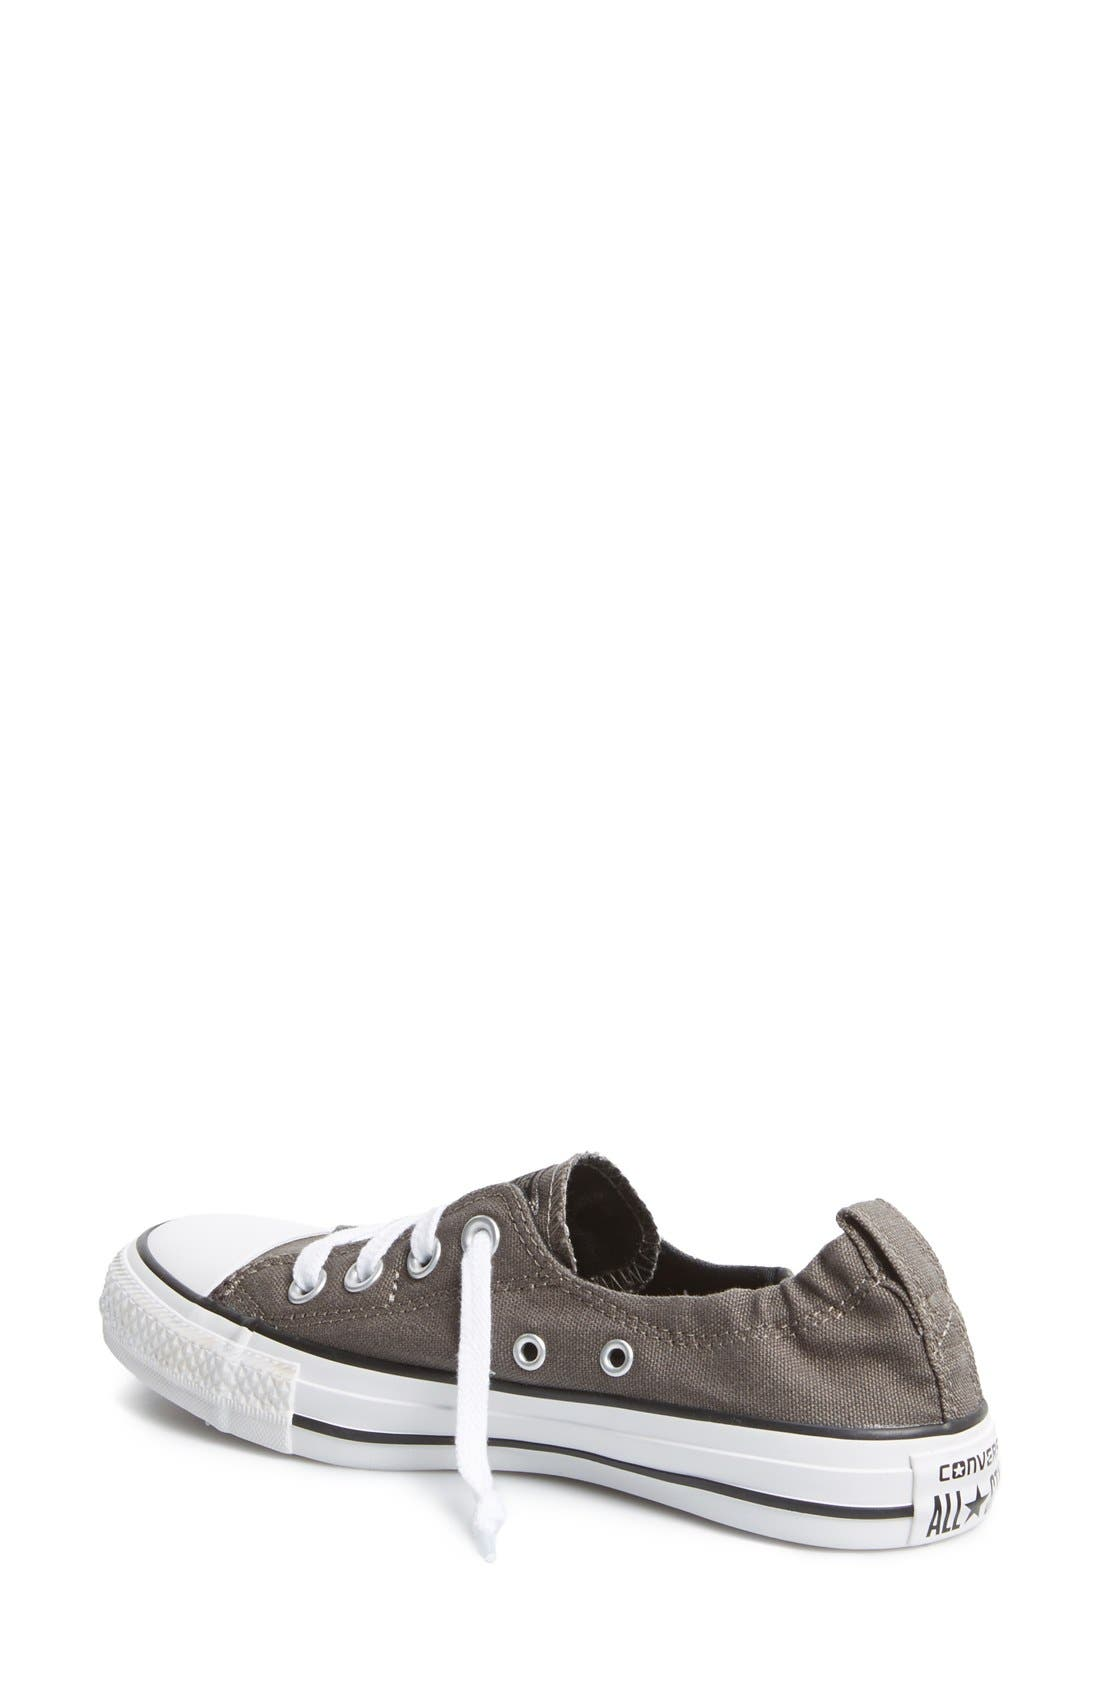 CONVERSE, Chuck Taylor<sup>®</sup> All Star<sup>®</sup> Shoreline Low Top Sneaker, Alternate thumbnail 2, color, 050